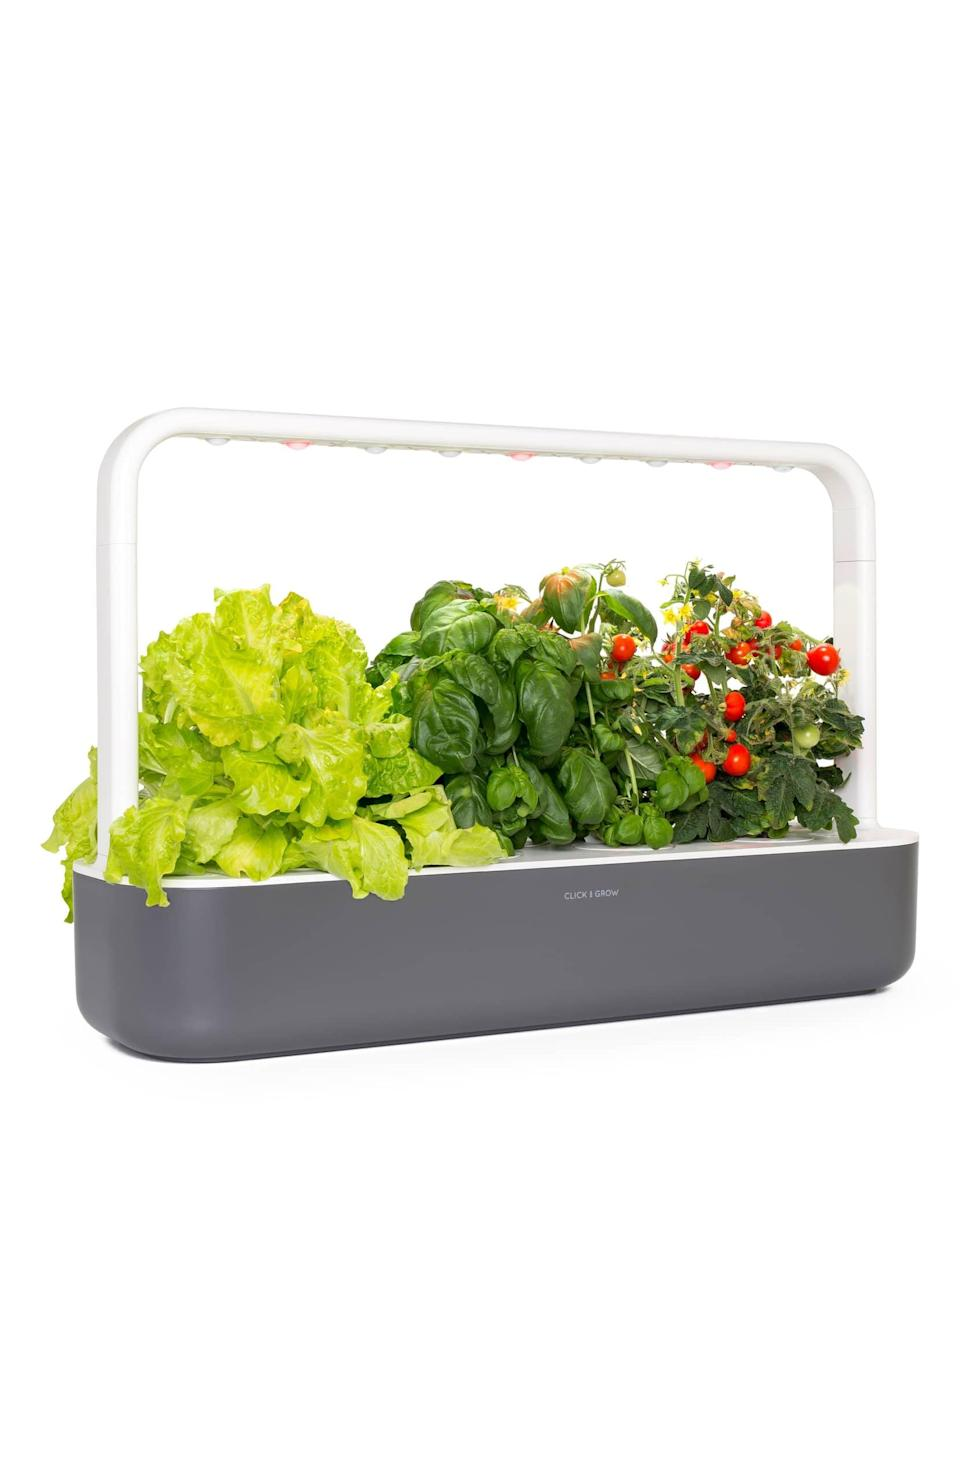 <p>Home cooks will love having this <span>Click &amp; Grow Smart Garden 9 Self Watering Indoor Garden</span> ($200) that produces fresh produce all year long, regardless of weather.</p>